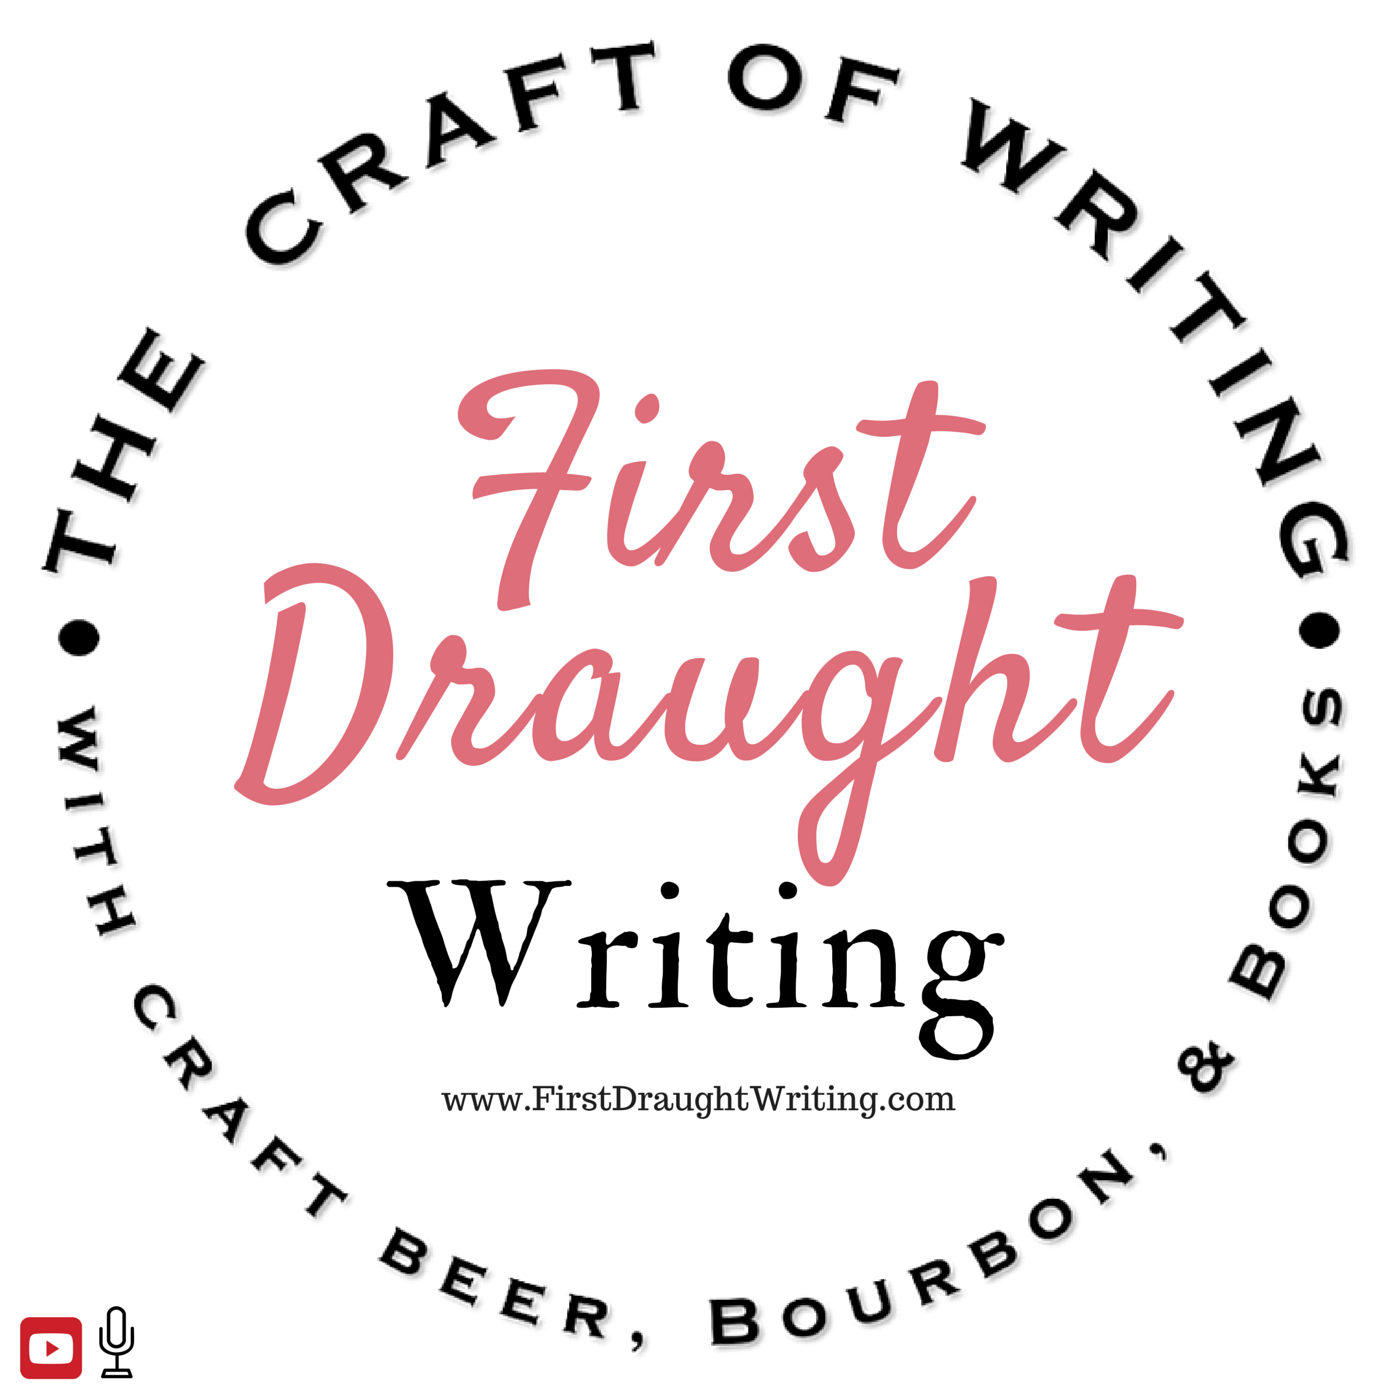 First Draught Writing